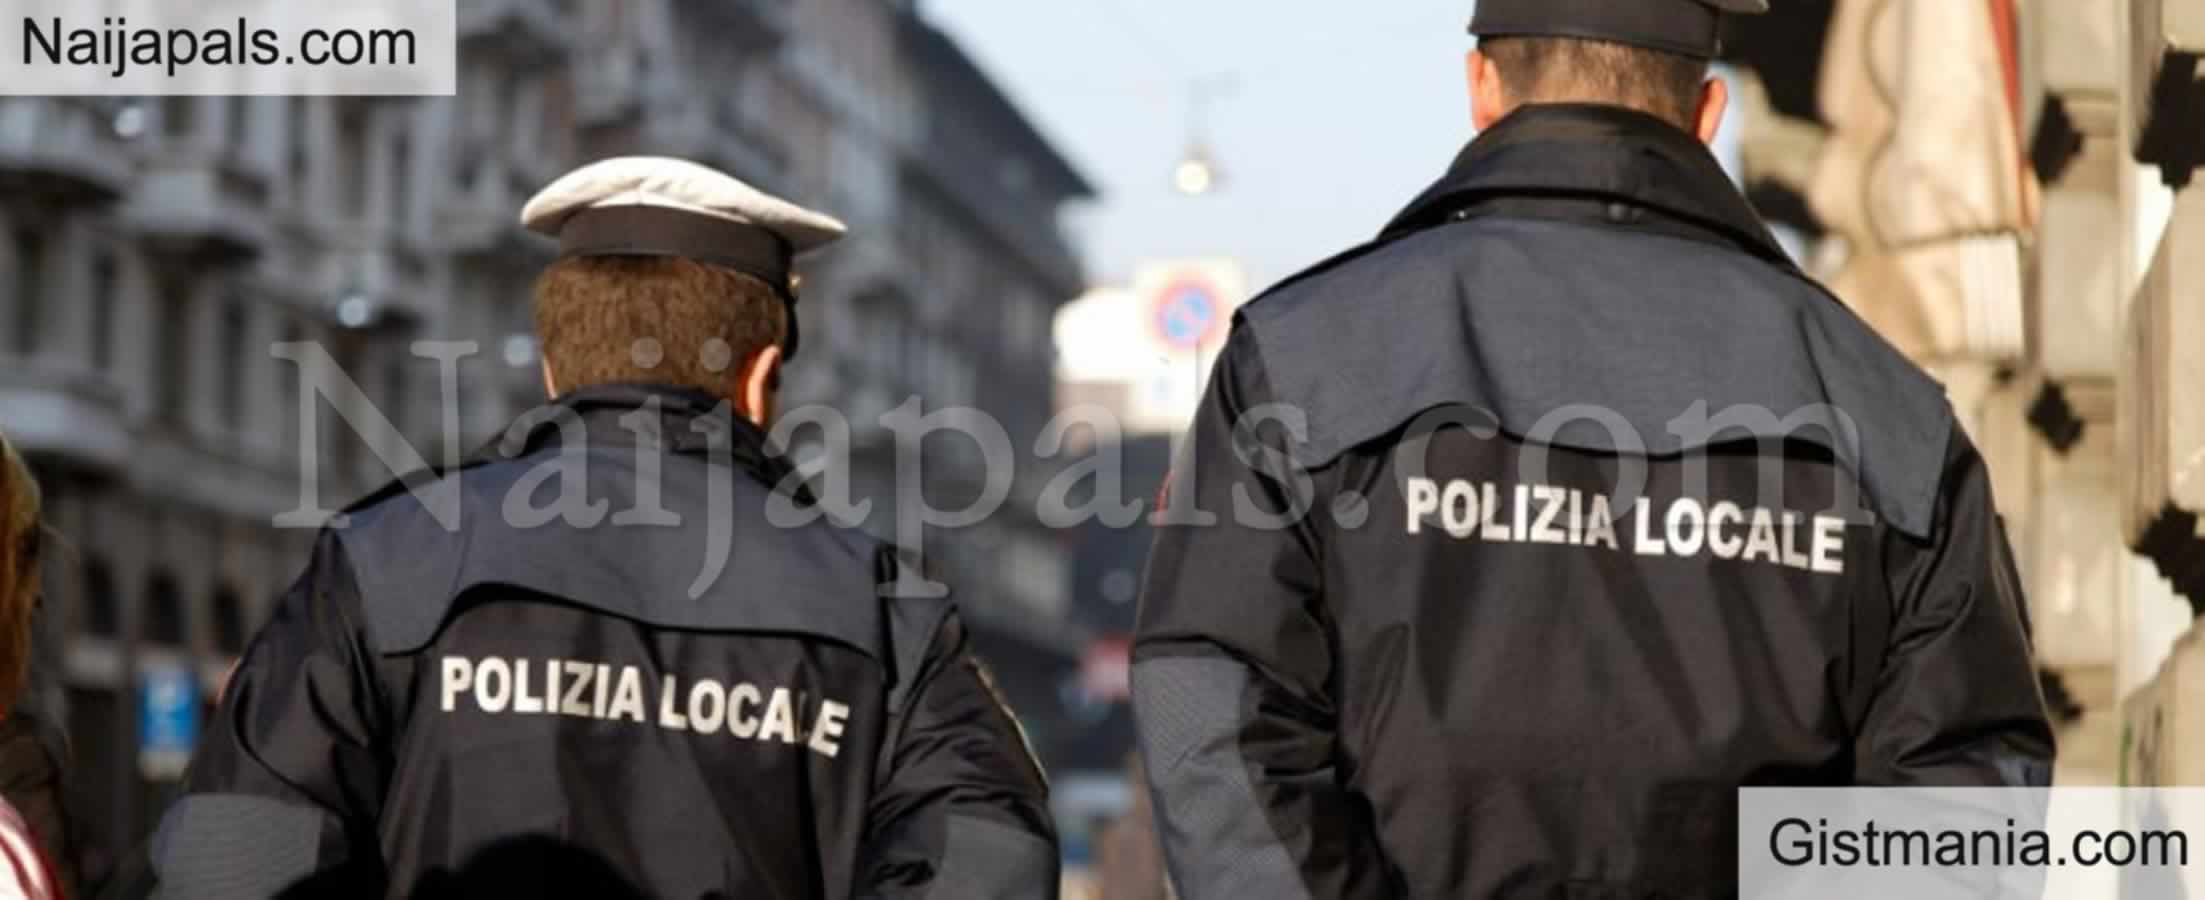 11 Nigerians Arrested in Italy for Prostitution and Smuggling